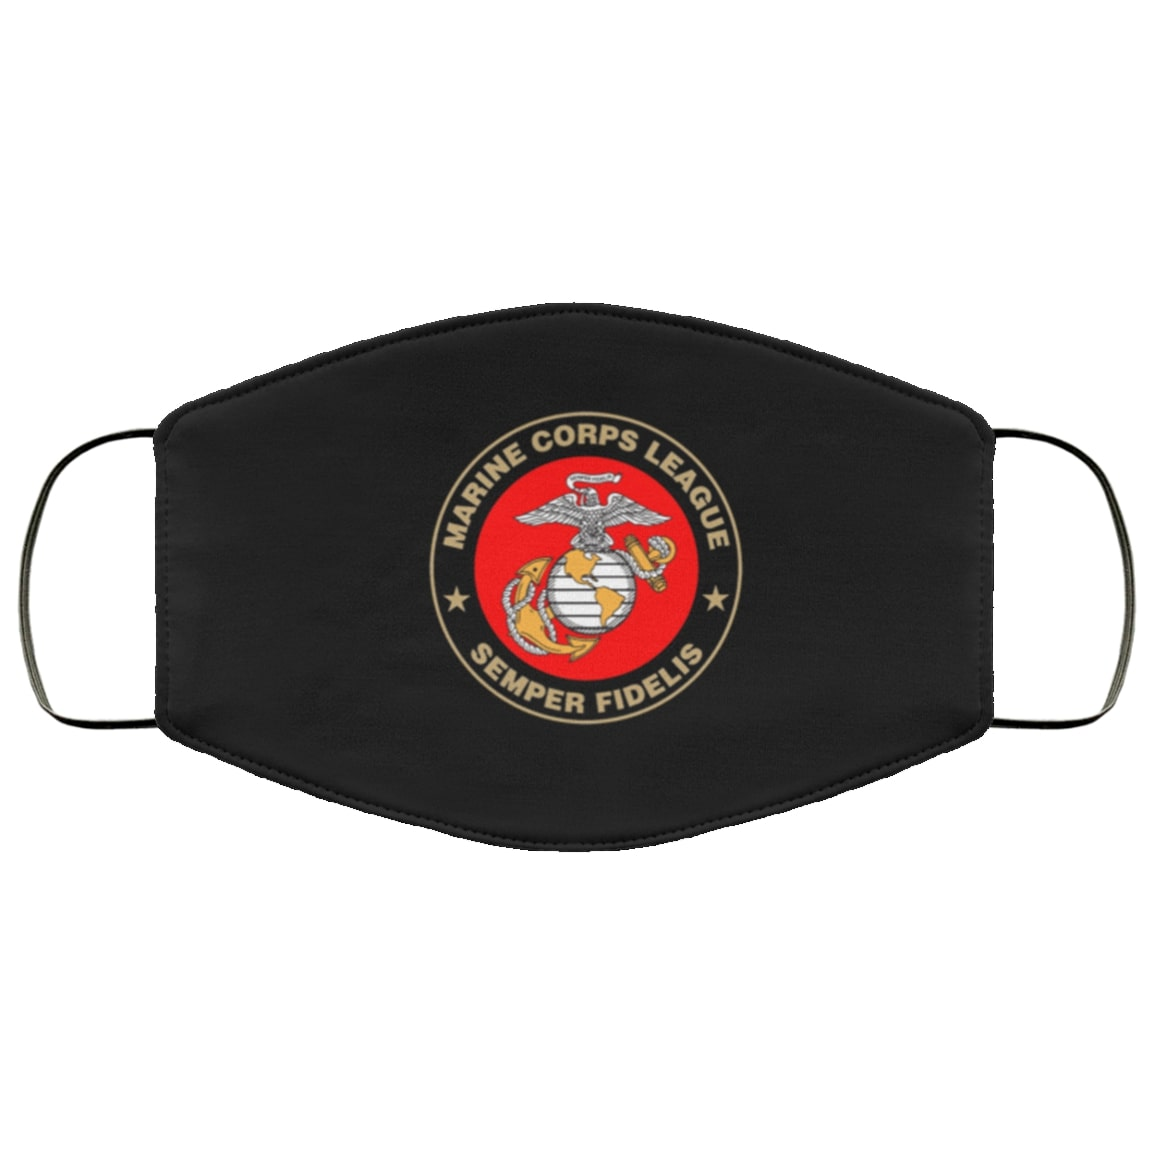 Marine corps league semper fidelis all over printed face mask 2